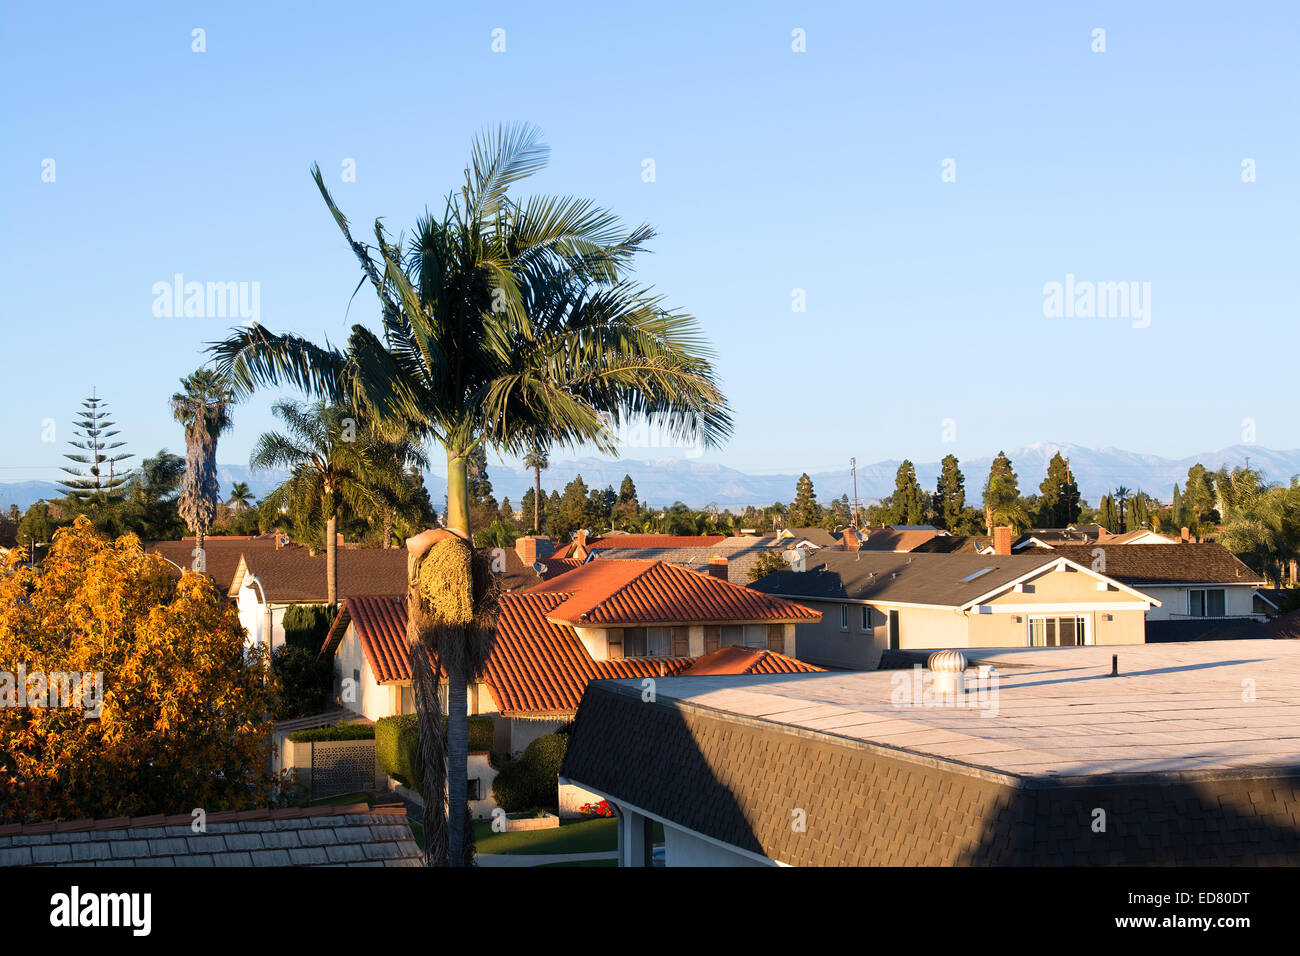 A residential tract of homes during an early morning sunrise. - Stock Image